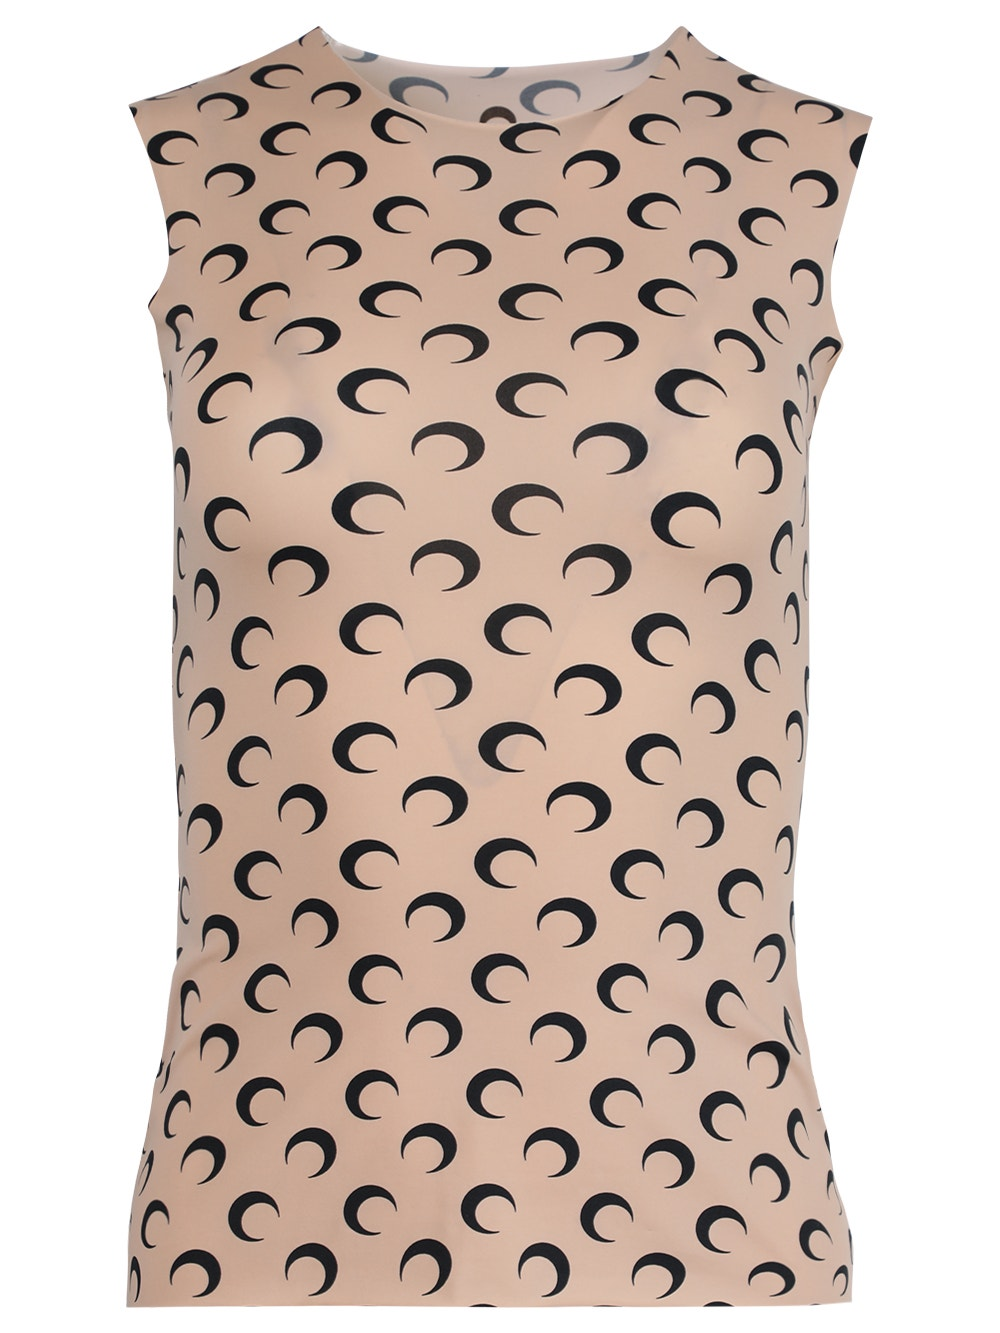 Tan & Black Sleeveless Moon Print Top